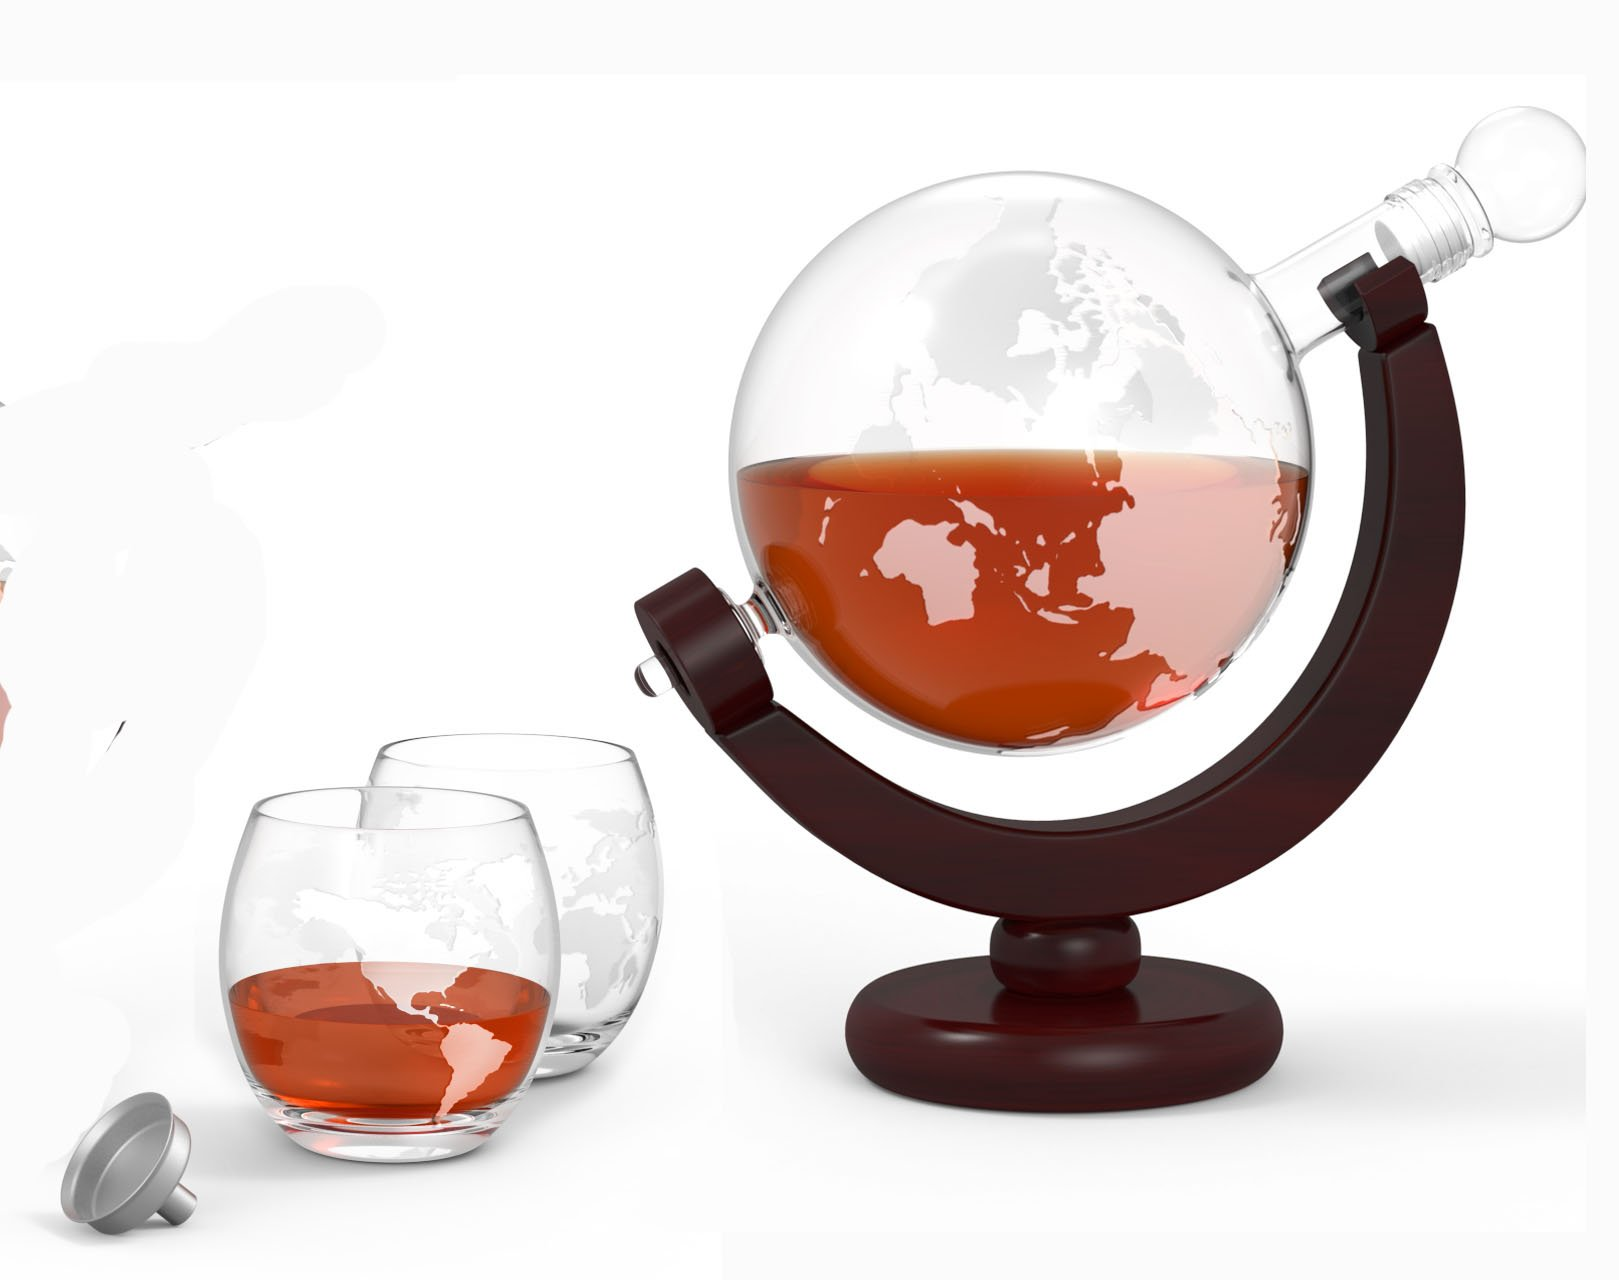 GlobeTrotter Etched Globe Spirits Decanter with Matching Glasses and Bar Funnel – 850 ml Whiskey and Wine Decanter in Wood Frame - BLOWOUT SALE!! - The Perfect Gift for Whiskey Lovers!